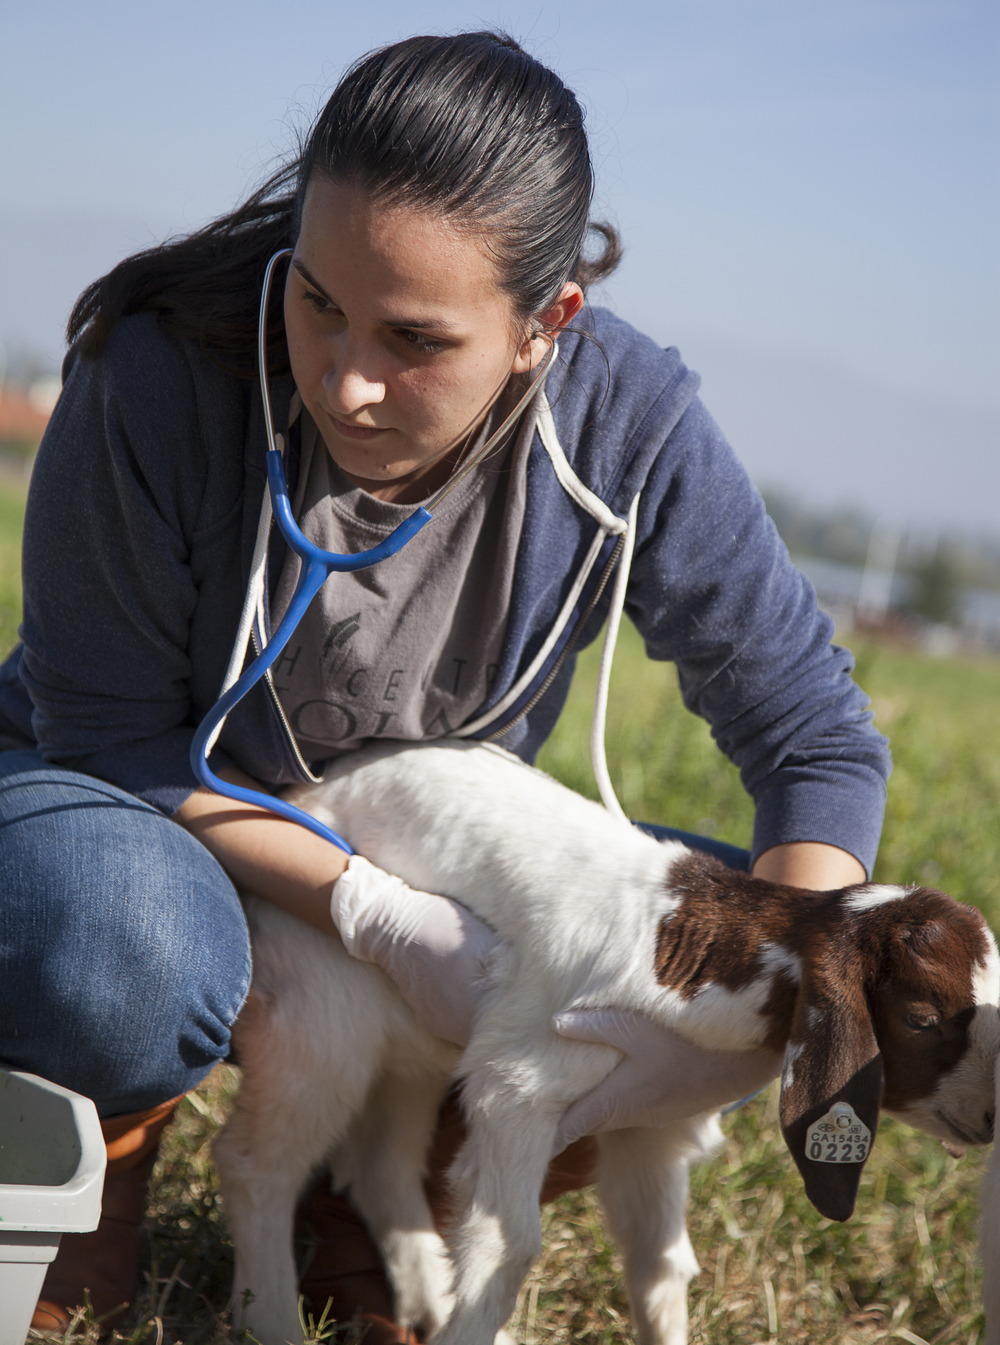 Georgina Martinez checks the heartbeat of baby goat #223 during a routine physical exam at the Pierce farm on Friday, march 20, 2015. Baby goat #223 was born blind. Woodland Hills, Calif.  Read the full story  here